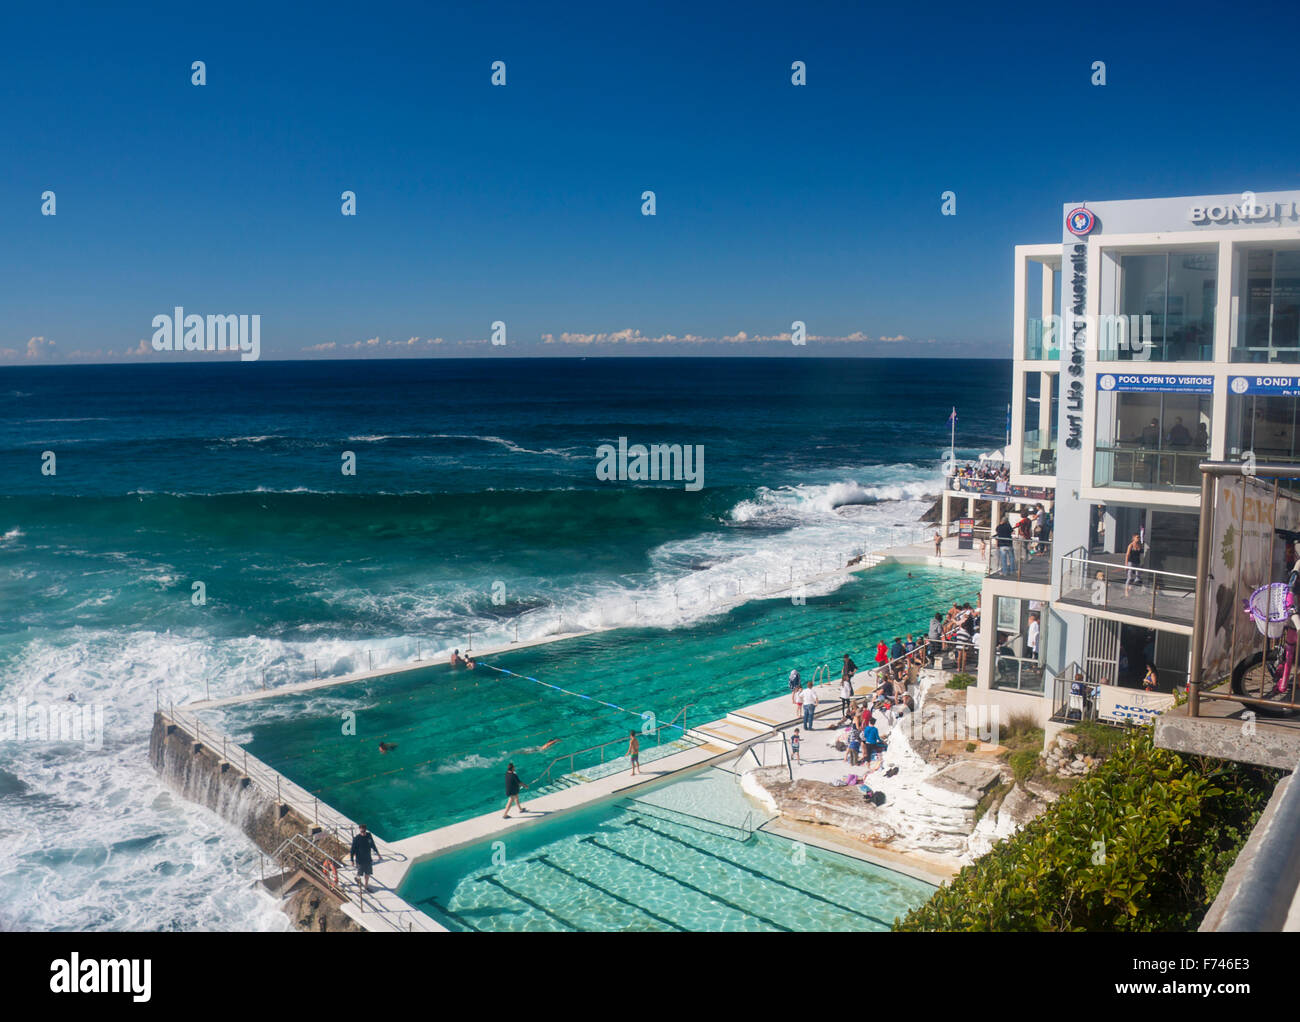 Bondi Icebergs Swimming Pool And Pacific Ocean Sydney New South Wales Stock Photo 90447339 Alamy